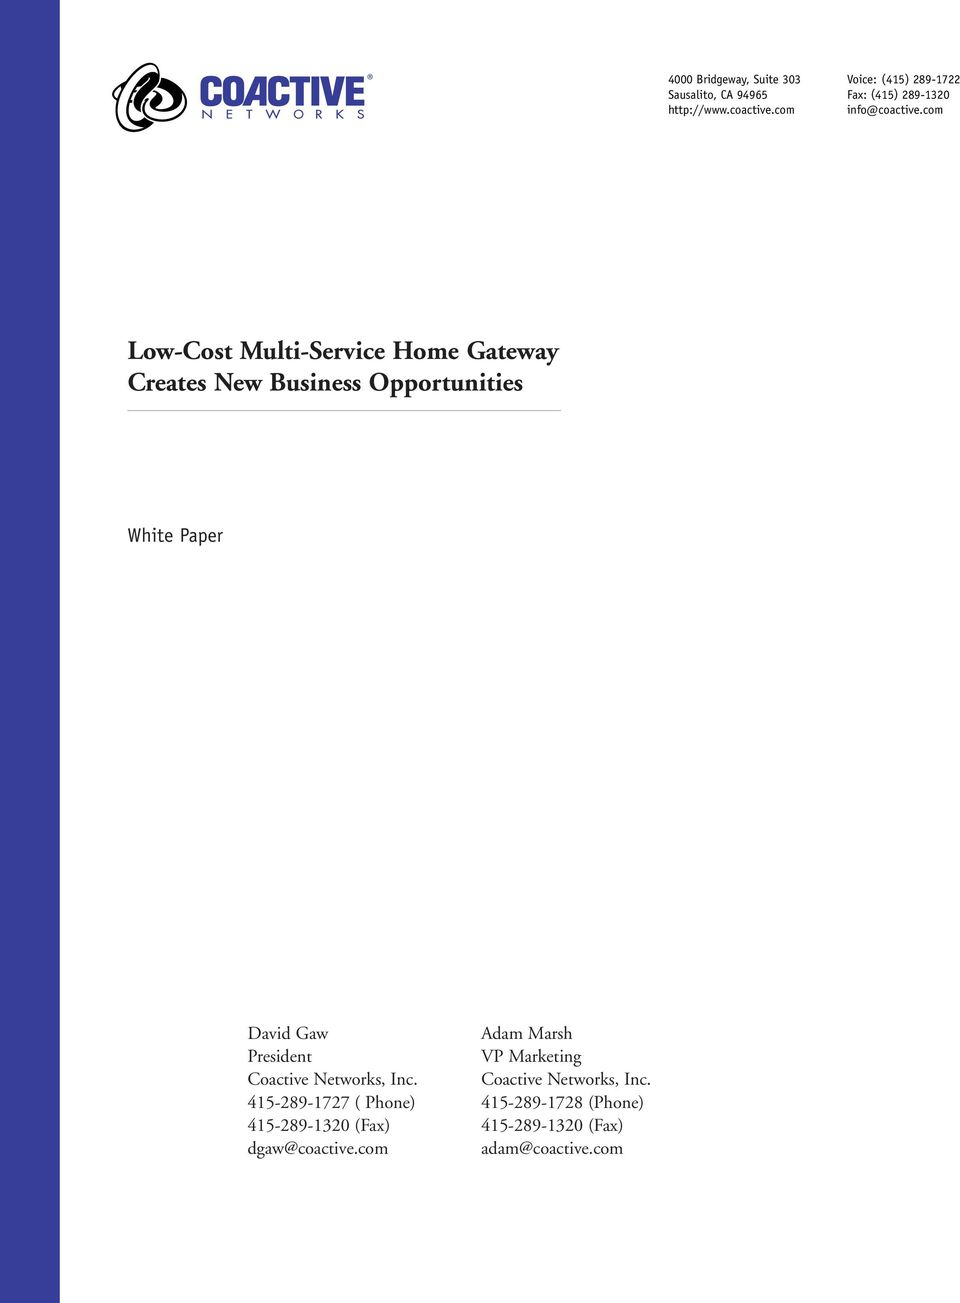 com Low-Cost Multi-Service Home Gateway Creates New Business Opportunities White Paper David Gaw Adam